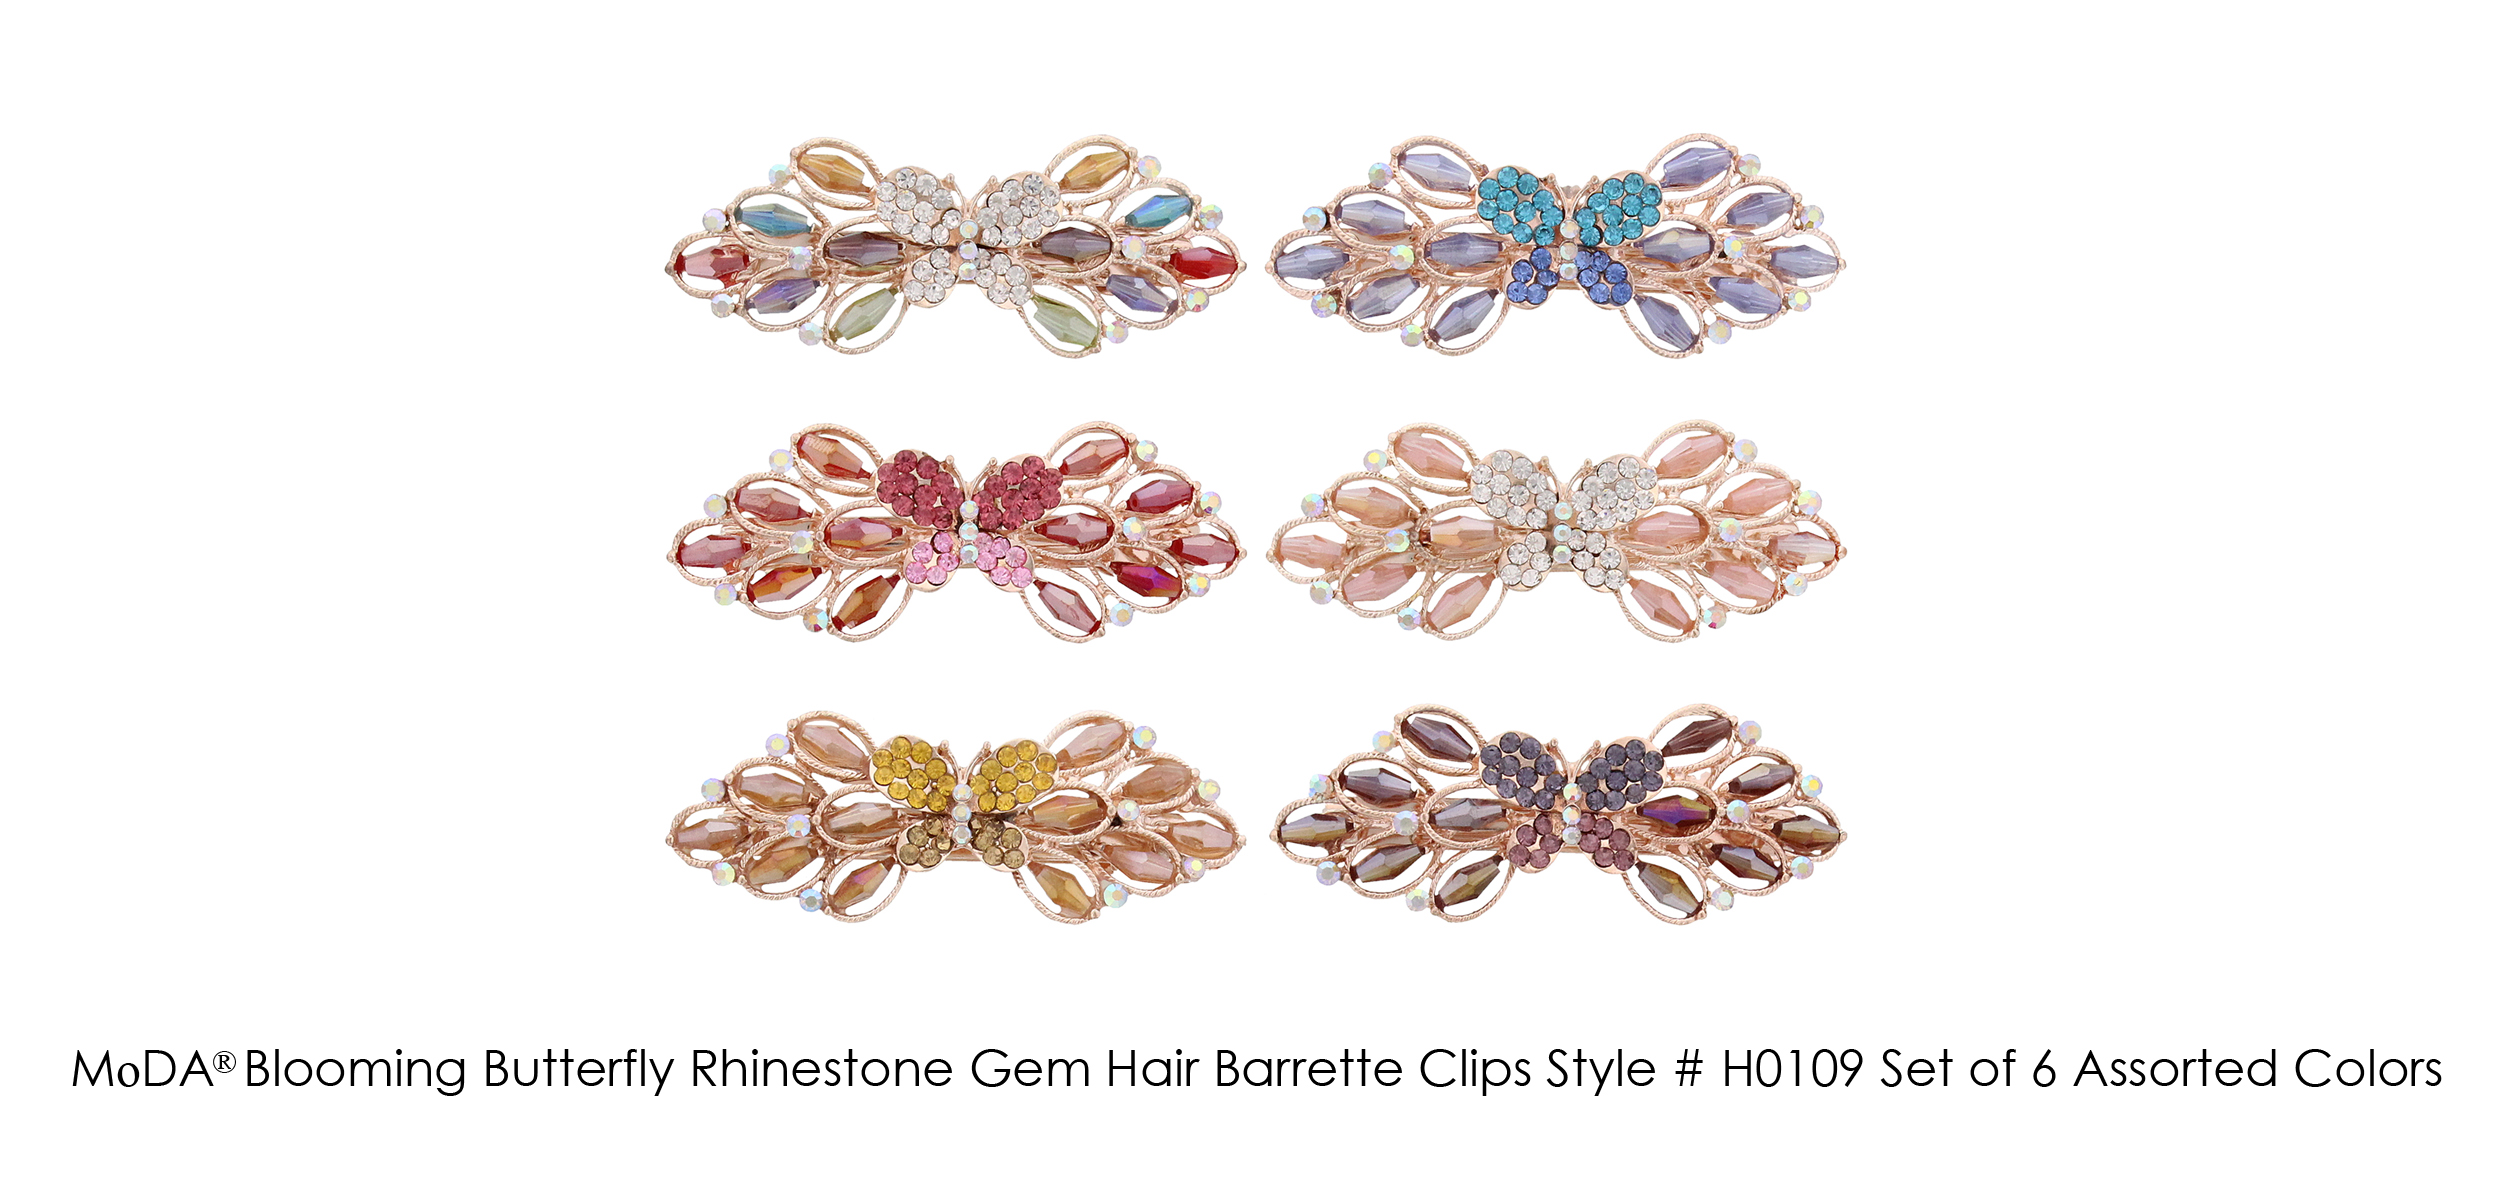 MoDA Blossoming Butterfly Rhinestone Gem Large Hair Clips Set of 6 Assorted Colors